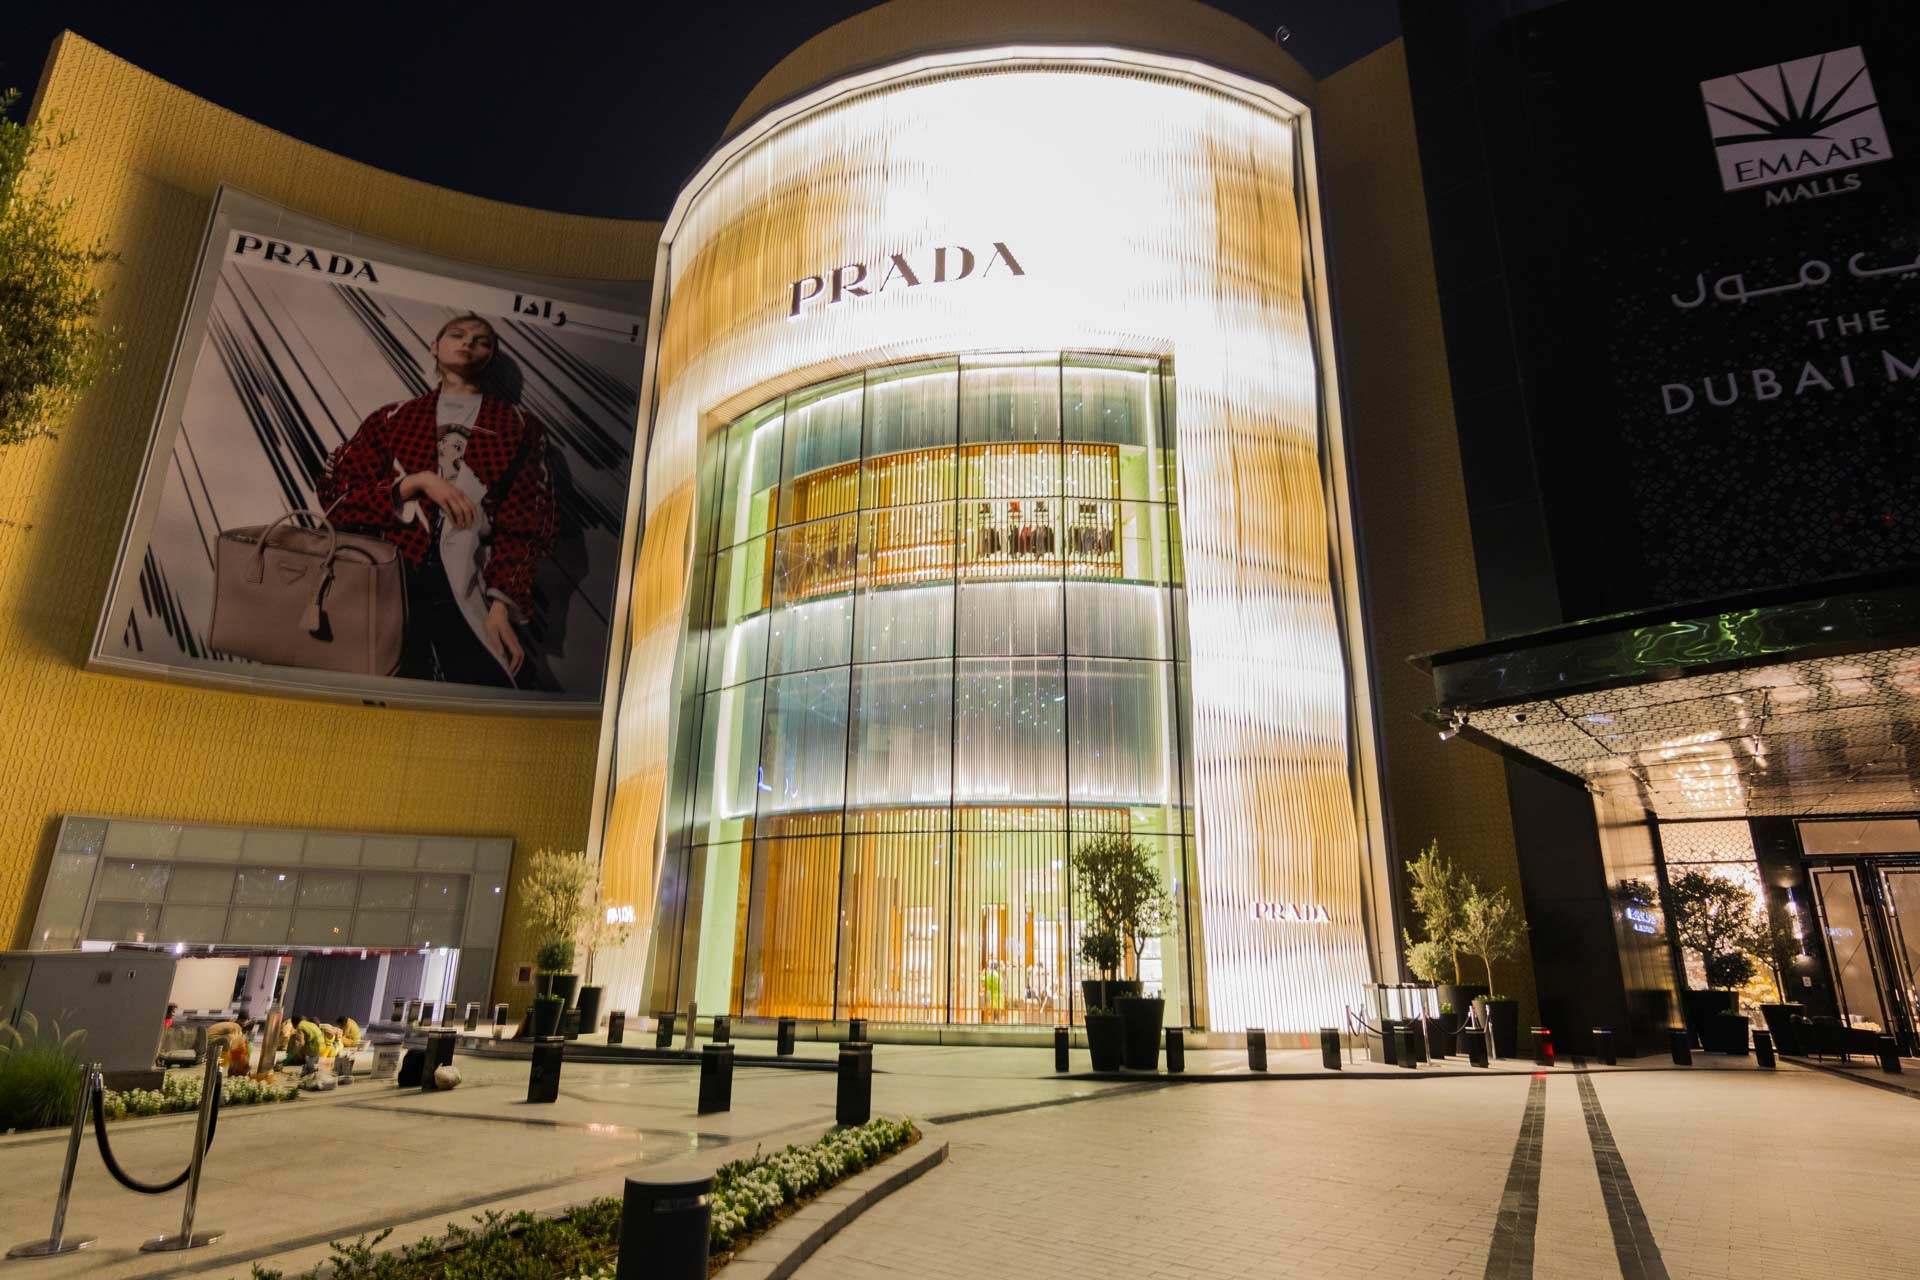 dc6da163b00d A NEW PRADA FLAGSHIP STORE  THE DUBAI MALL